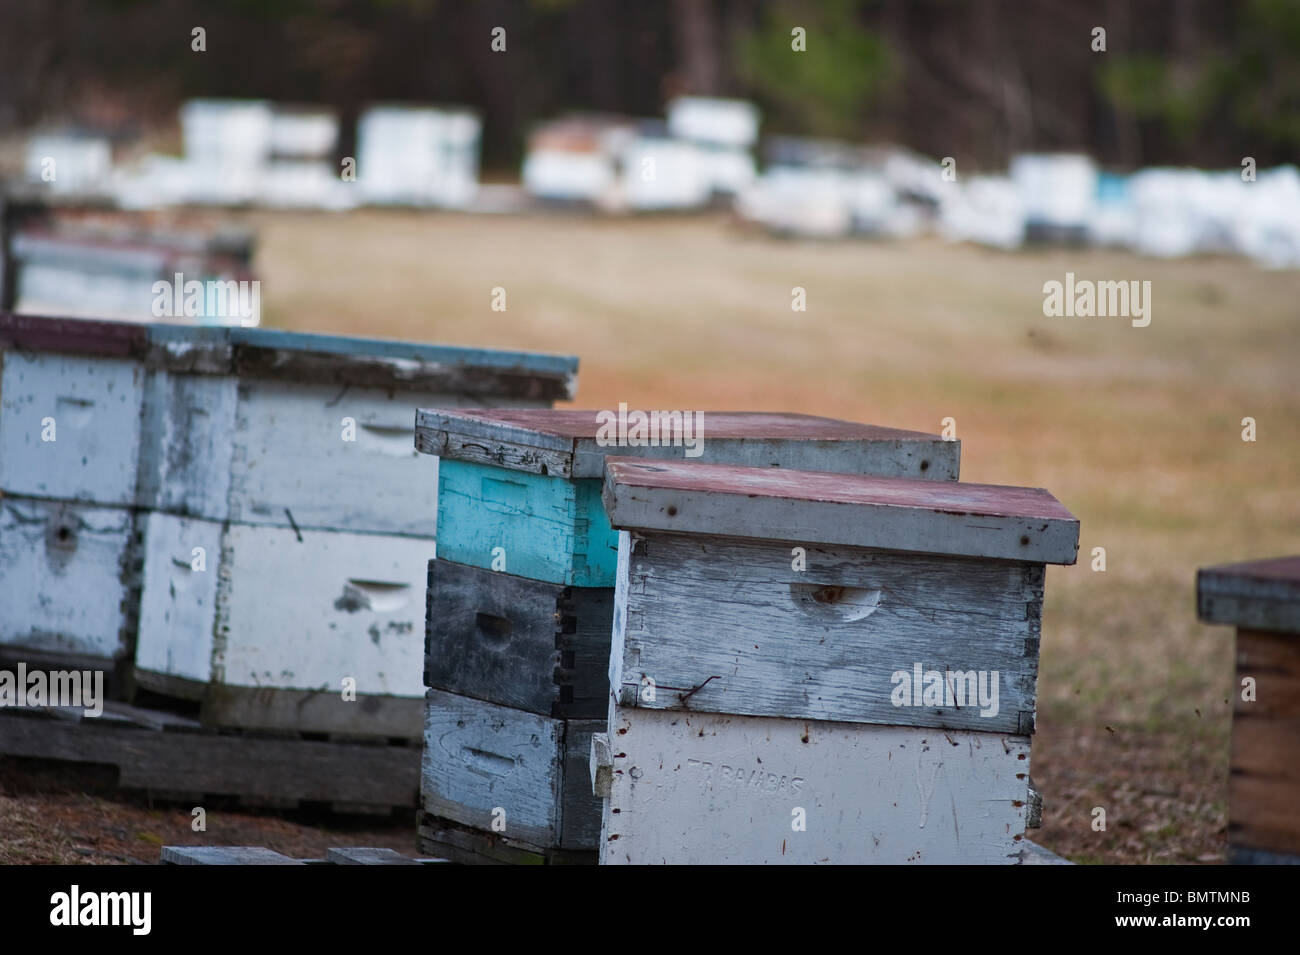 Bee keeper's hives, Manistee county, Michigan - Stock Image